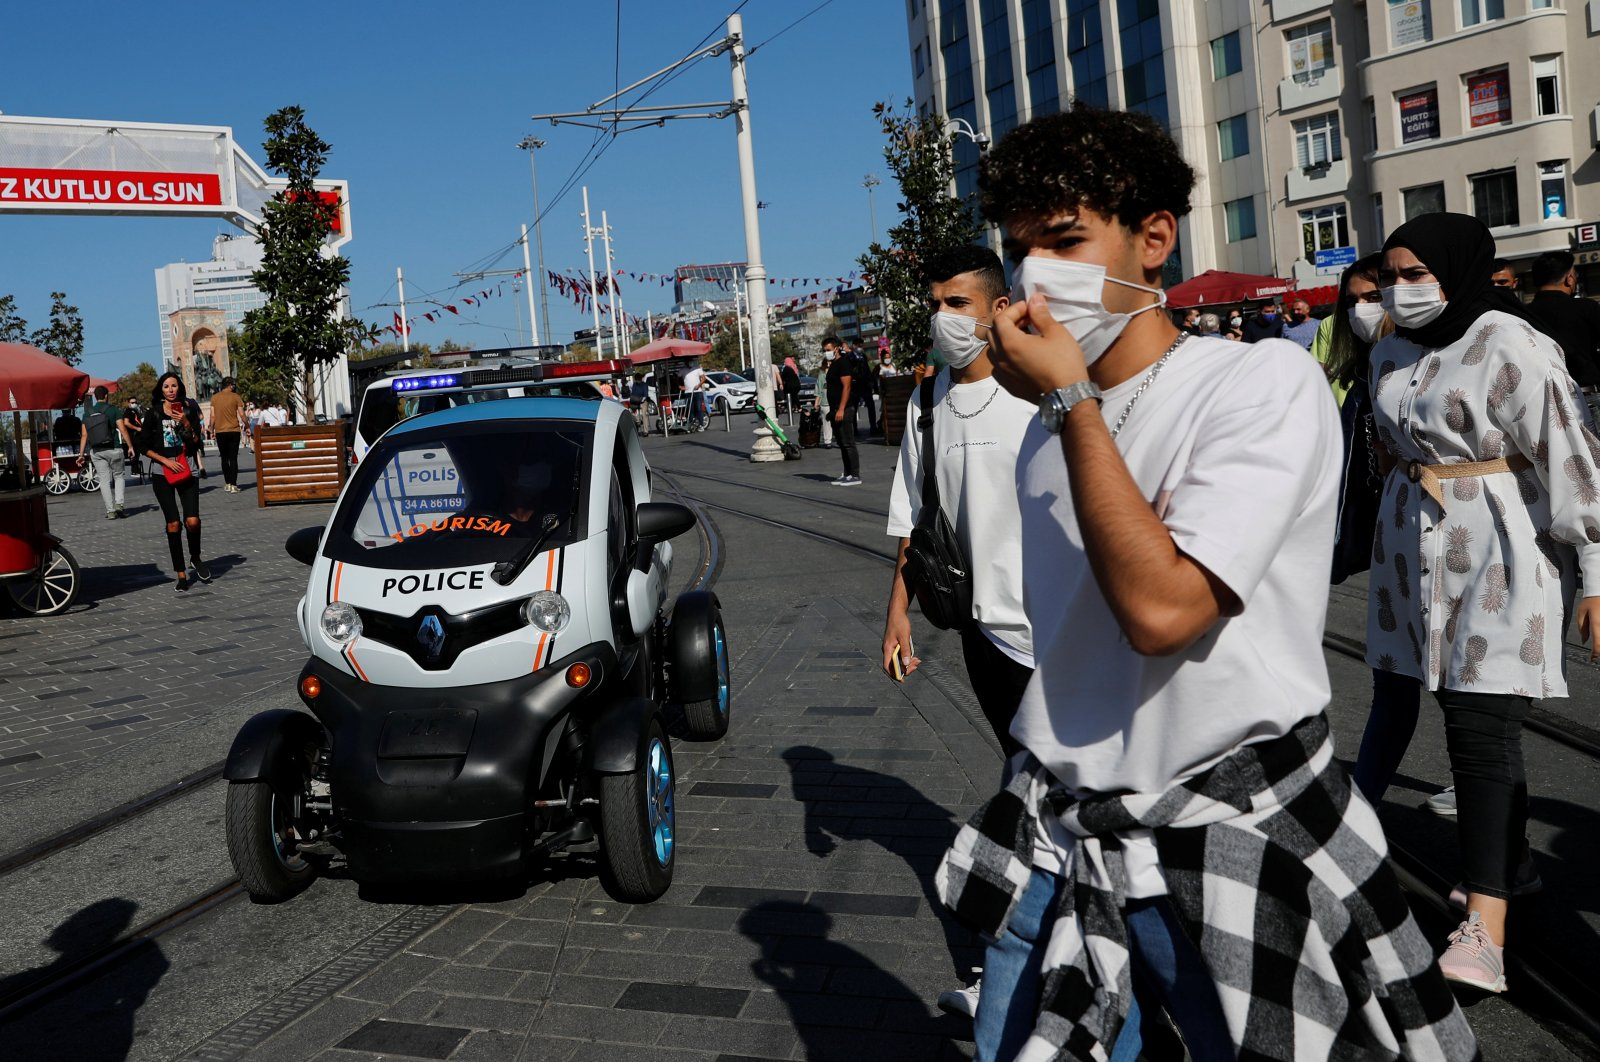 A member of the Tourism Police sitting in car patrols fine people for not wearing protective face masks at the main shopping and pedestrian street of Istiklal as the spread of the coronavirus disease continues, in Istanbul, Turkey Sept. 27, 2020. (Reuters Photo)